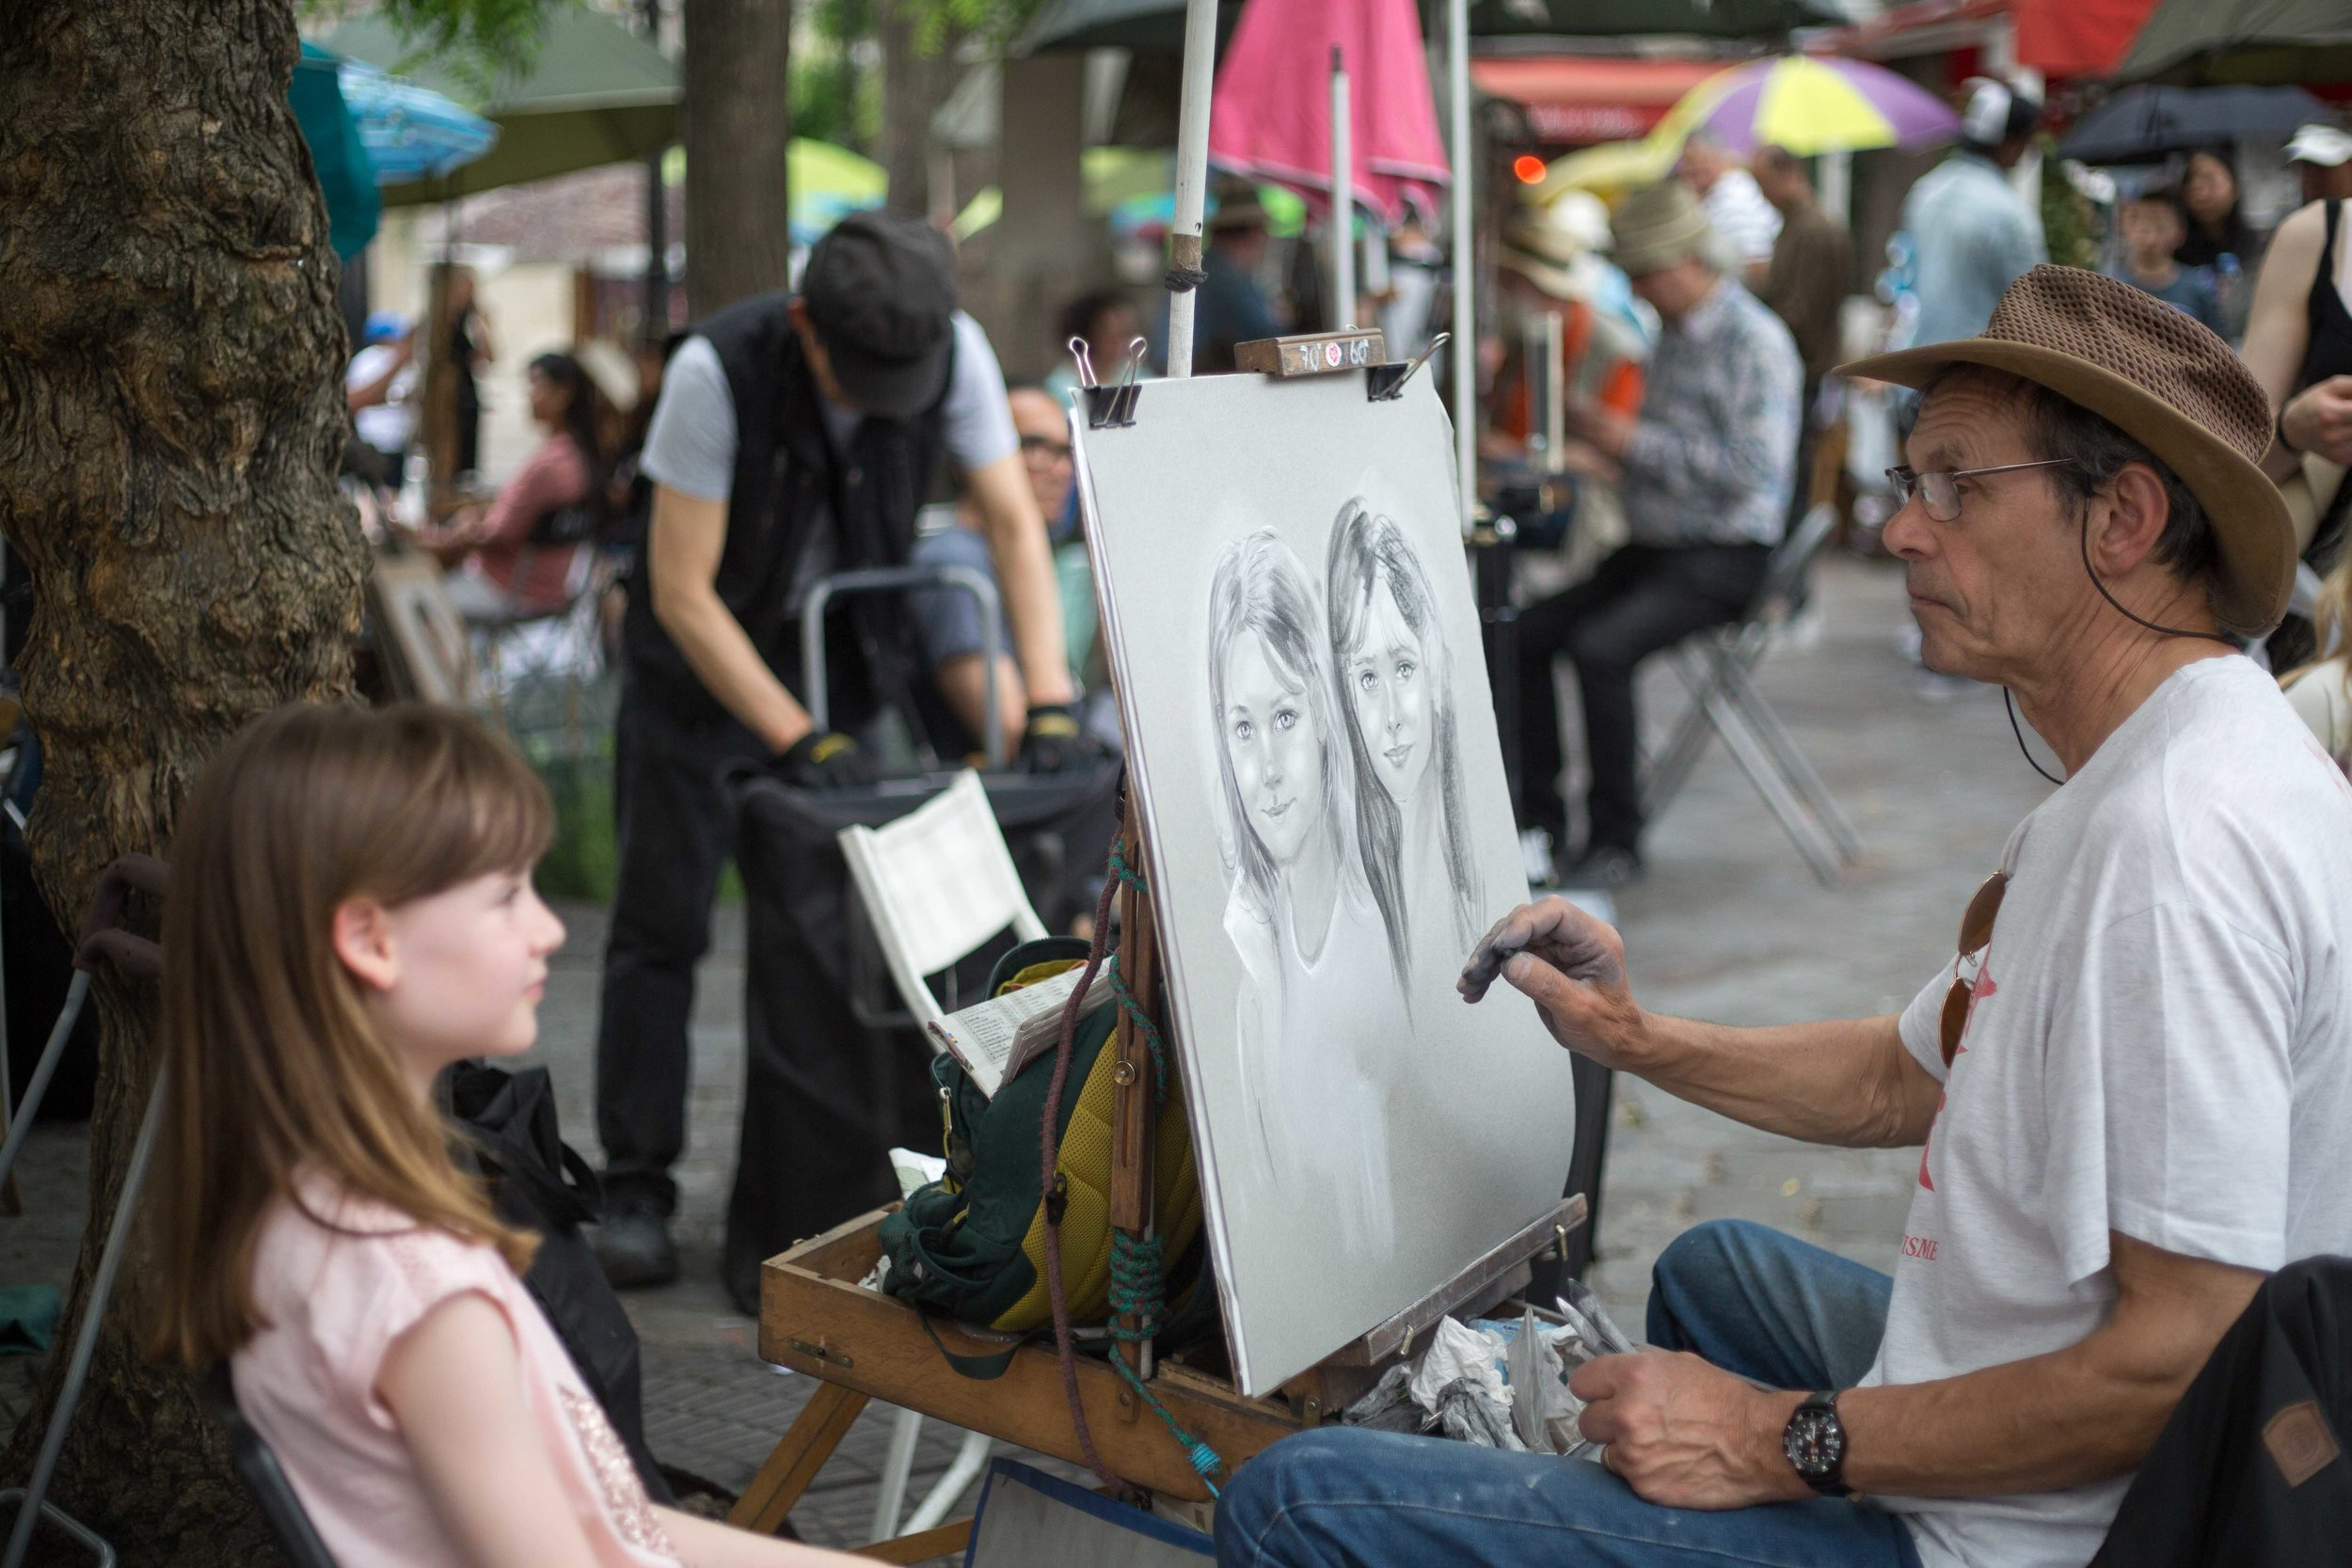 MONTMARTRE PHOTO WALK - 1 JUNE